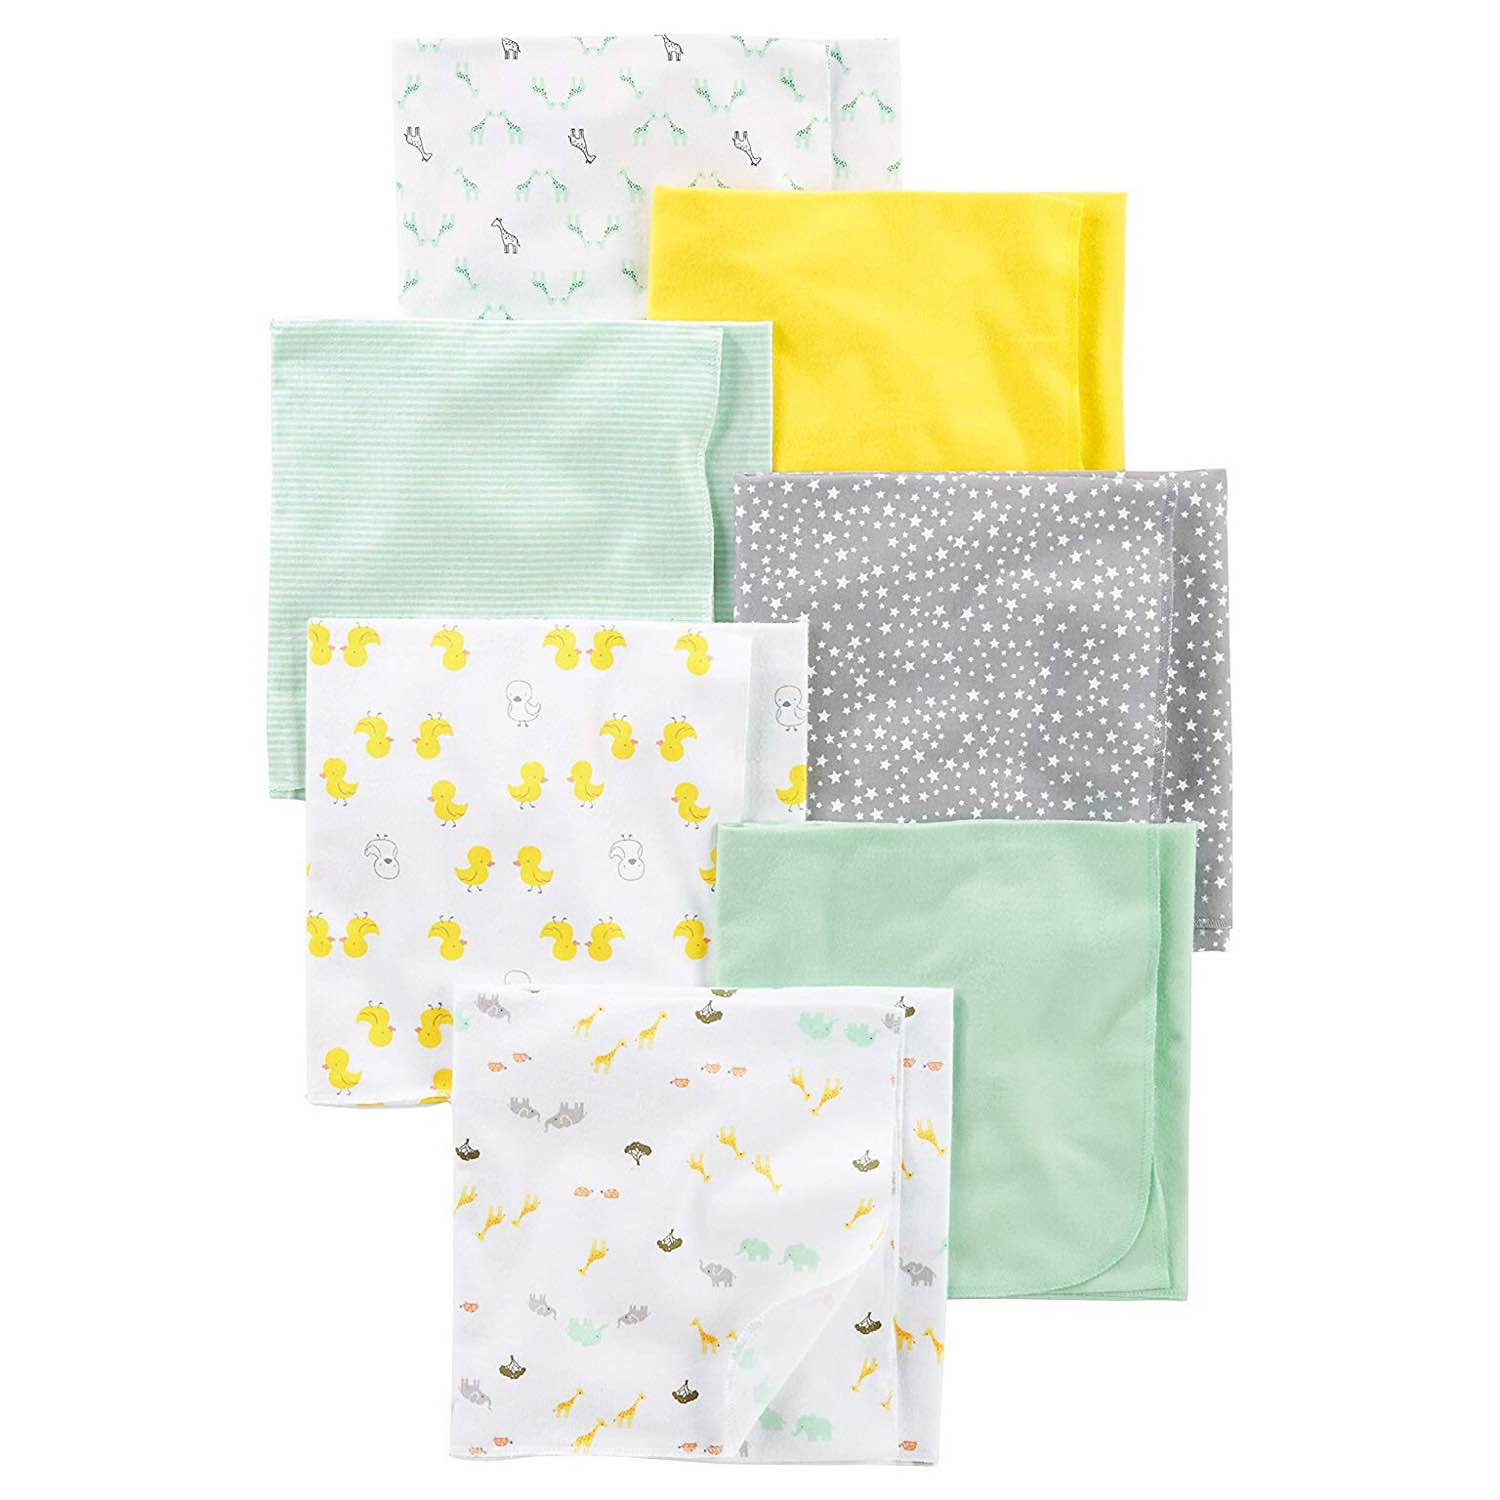 Simple Joys flannel receiving blankets. ($16 for a 7-pack)